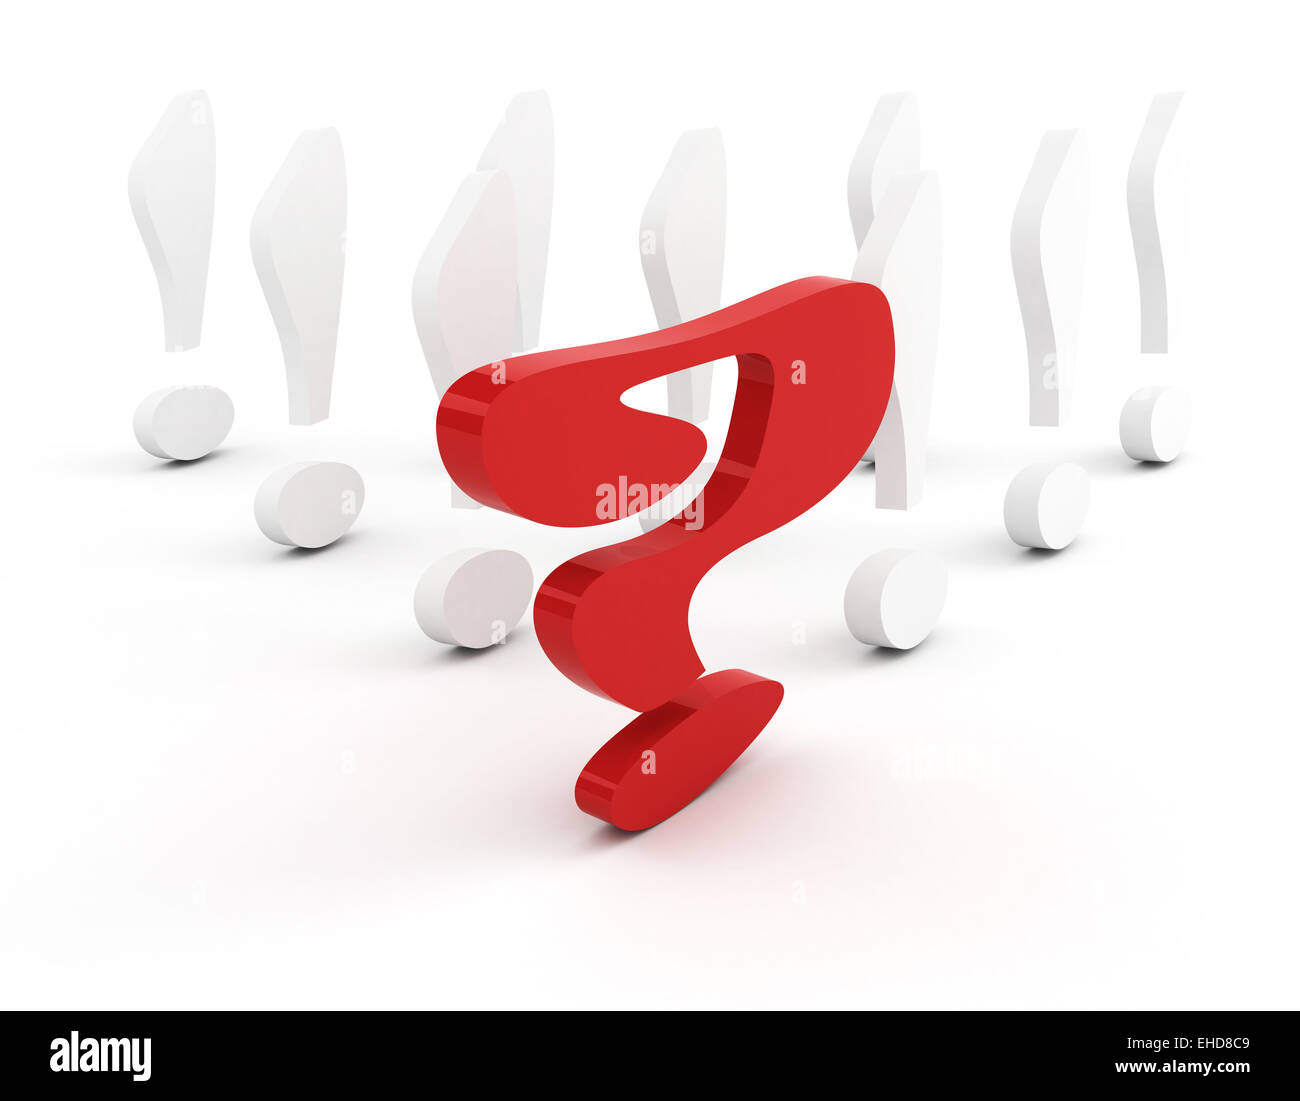 question-mark leadership concept - Stock Image